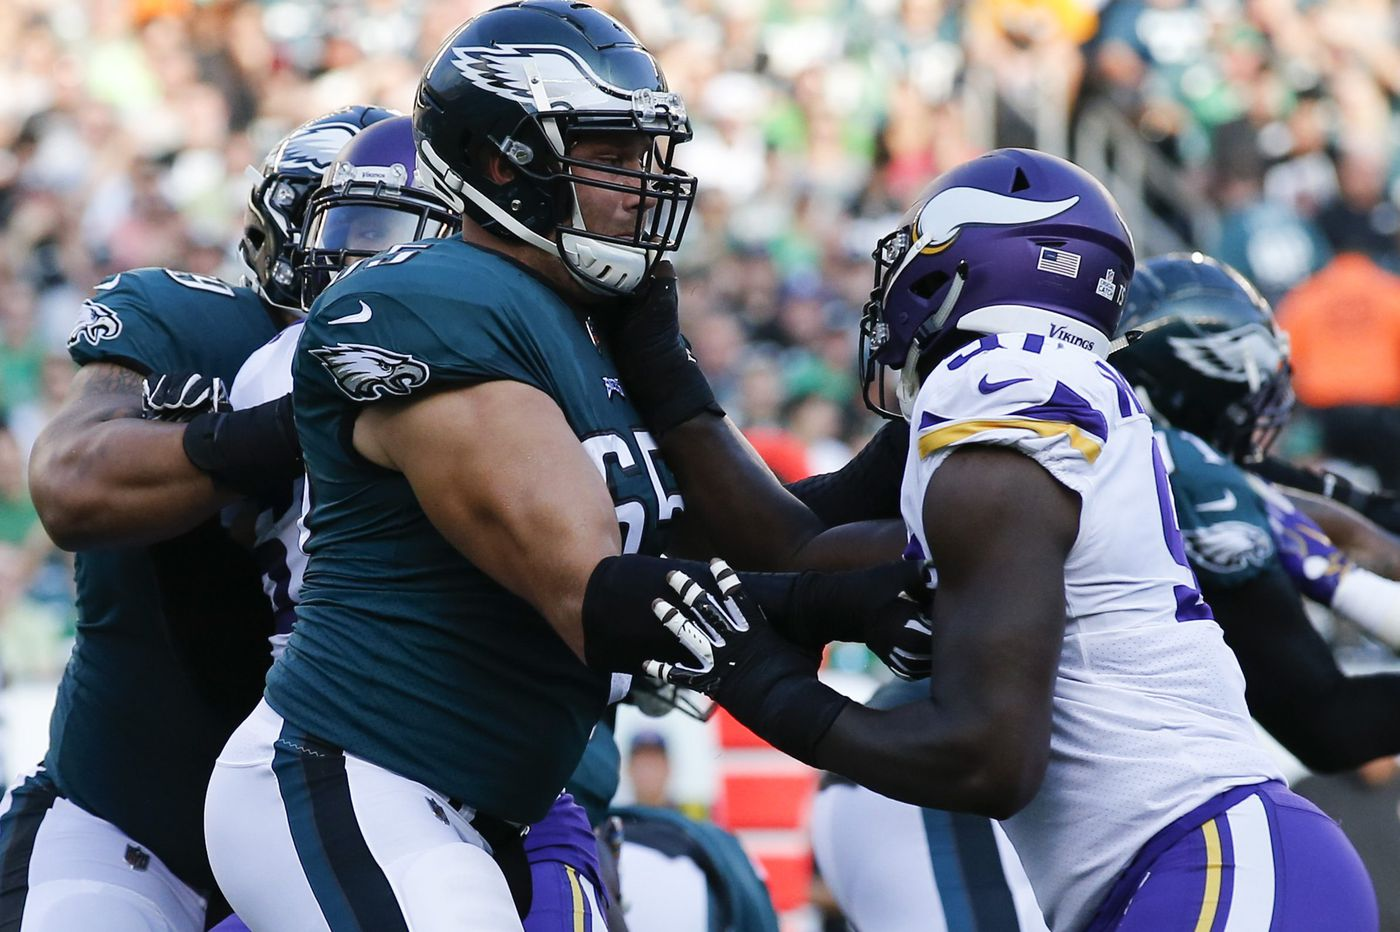 Another Eagles injury drama: Lane Johnson 'questionable' vs. Giants with high ankle sprain